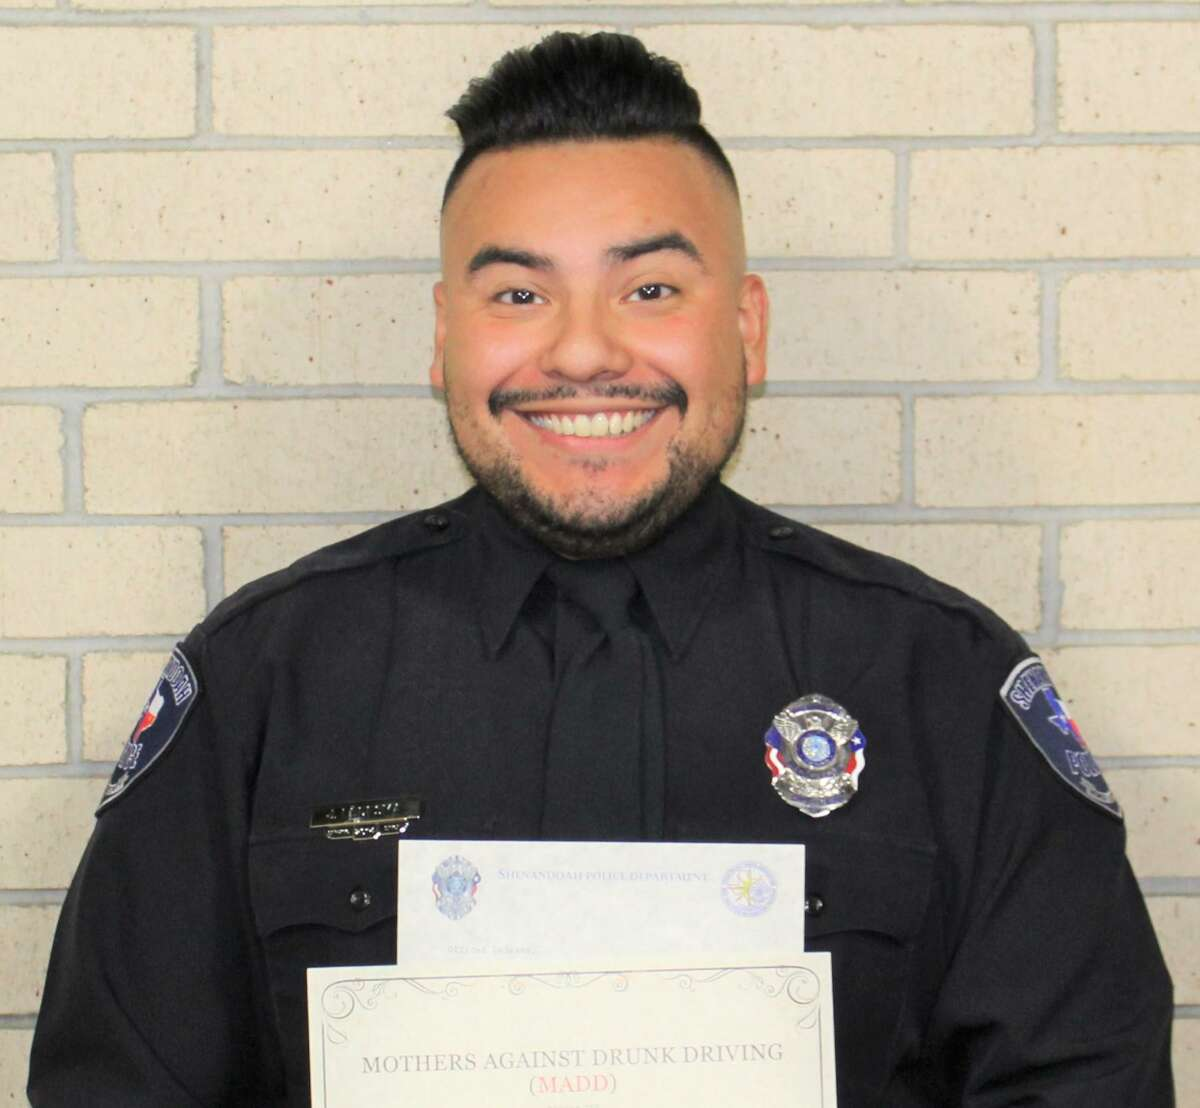 Shenandoah Police Department Officer Jeremiah Ledesma received on Oct. 14 an award from Mothers Against Drunk Driving.